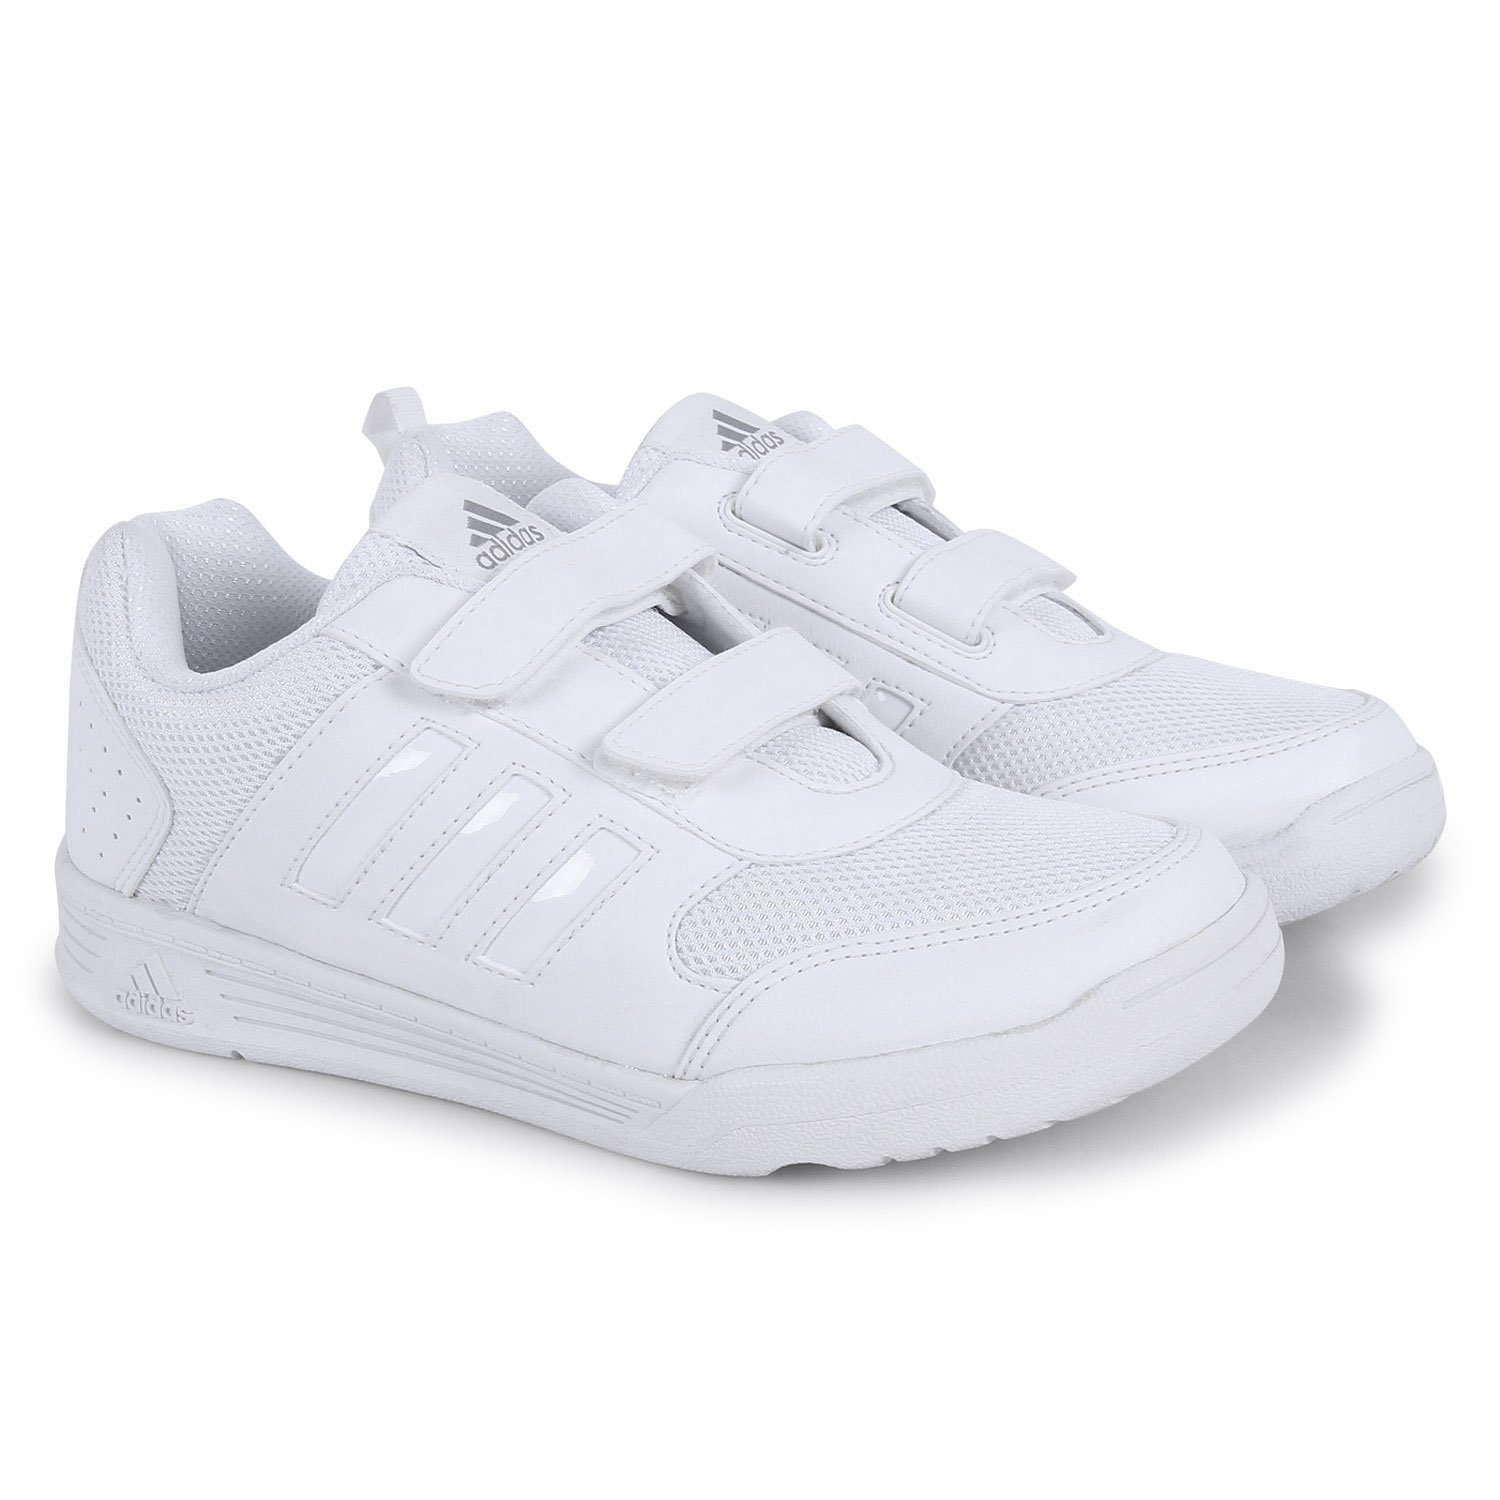 096d8c0c39f Adidas White School Shoes - Sports Shoes Kids Range (3 to 12 Years)  Buy  Online at Low Prices in India - Amazon.in